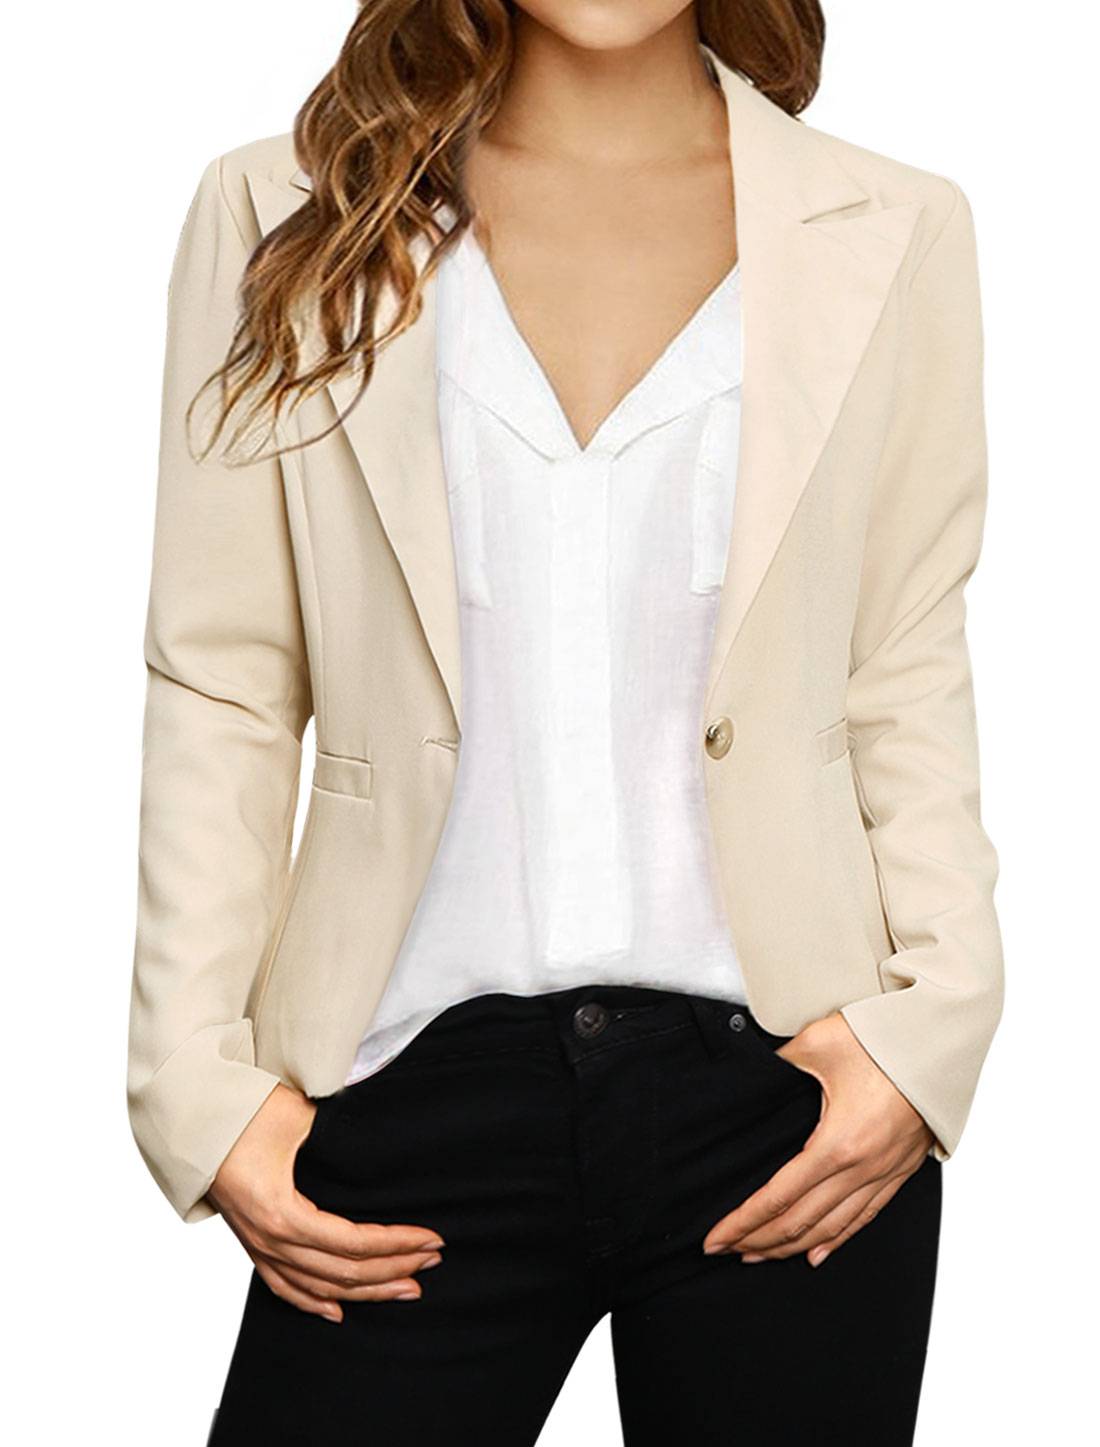 Allegra K Women Long Sleeves One-Button Elbow-Patch Blazer Beige S